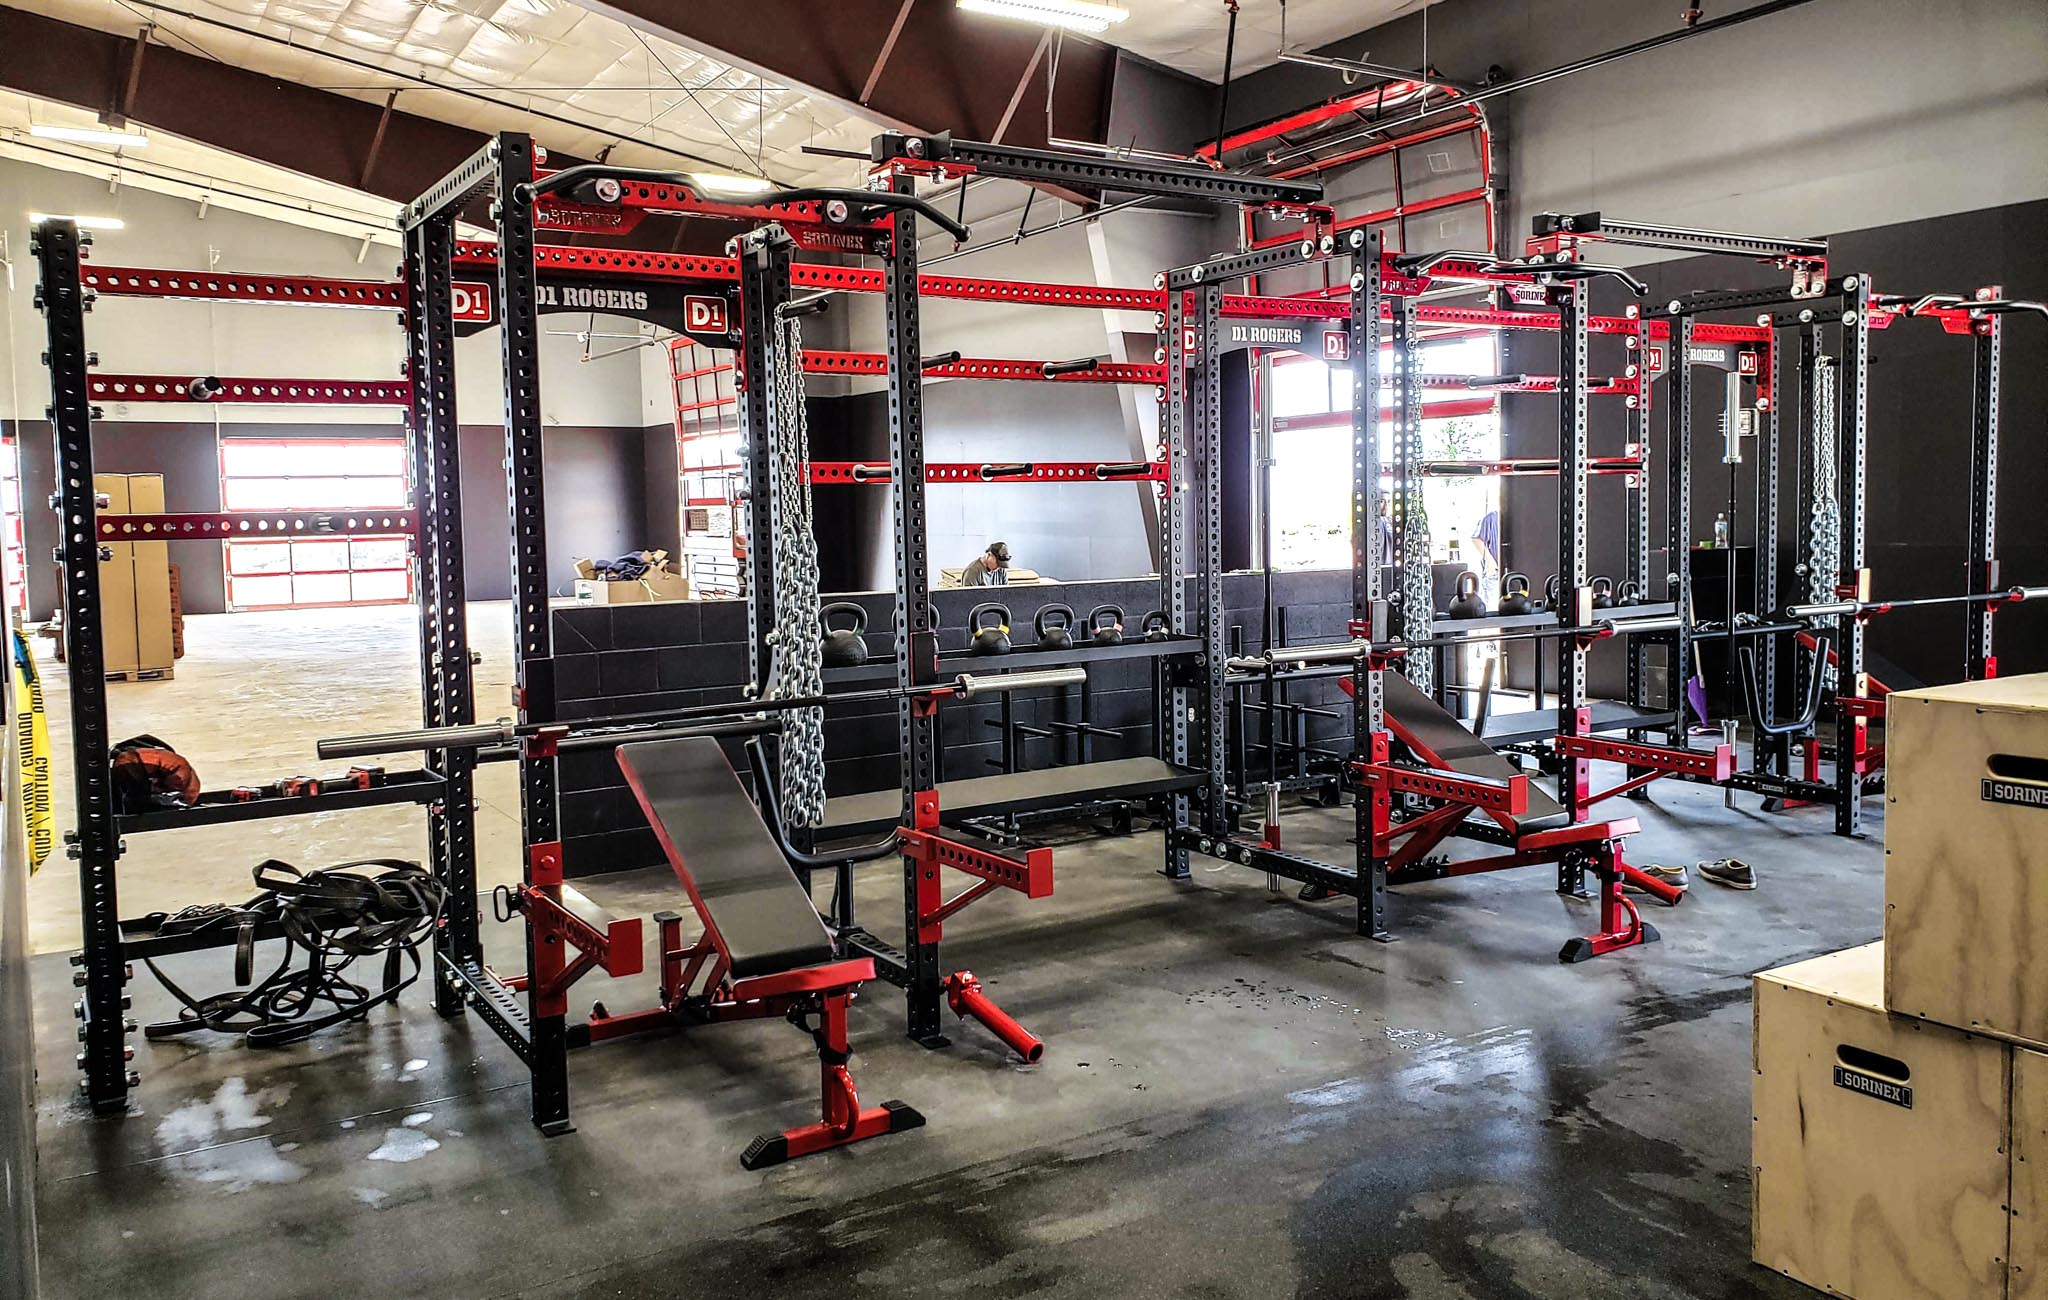 D1 Rogers Weight Room